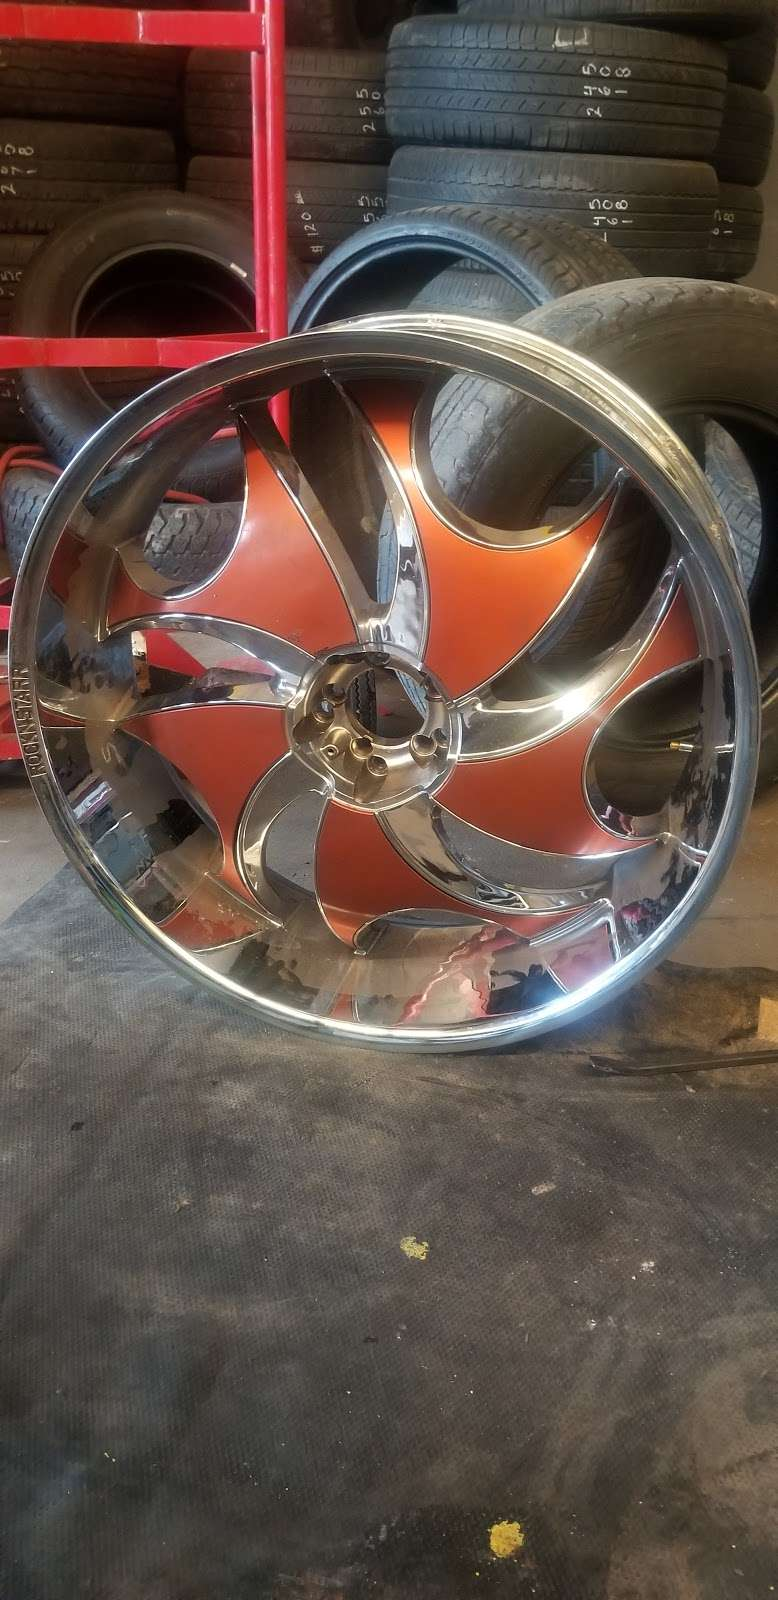 JADE USED TIRE SHOP - car repair  | Photo 6 of 10 | Address: 6105 E 38th St, Indianapolis, IN 46226, USA | Phone: (317) 515-5071